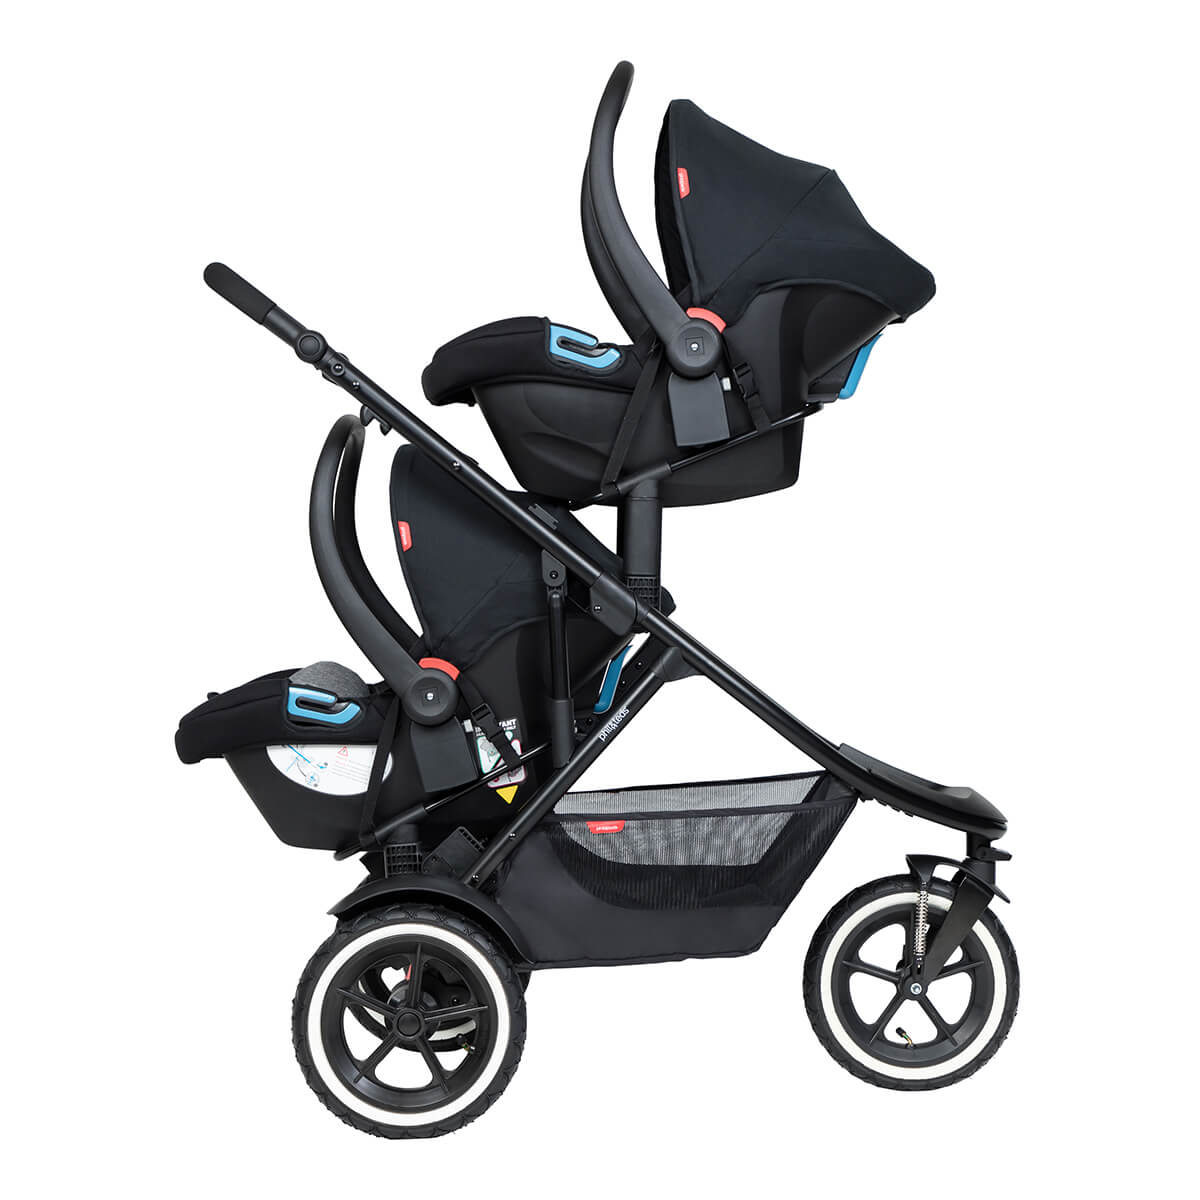 https://cdn.accentuate.io/4509527113816/19272668414040/philteds-sport-buggy-with-double-alpha-travel-system-v1626484327215.jpg?1200x1200